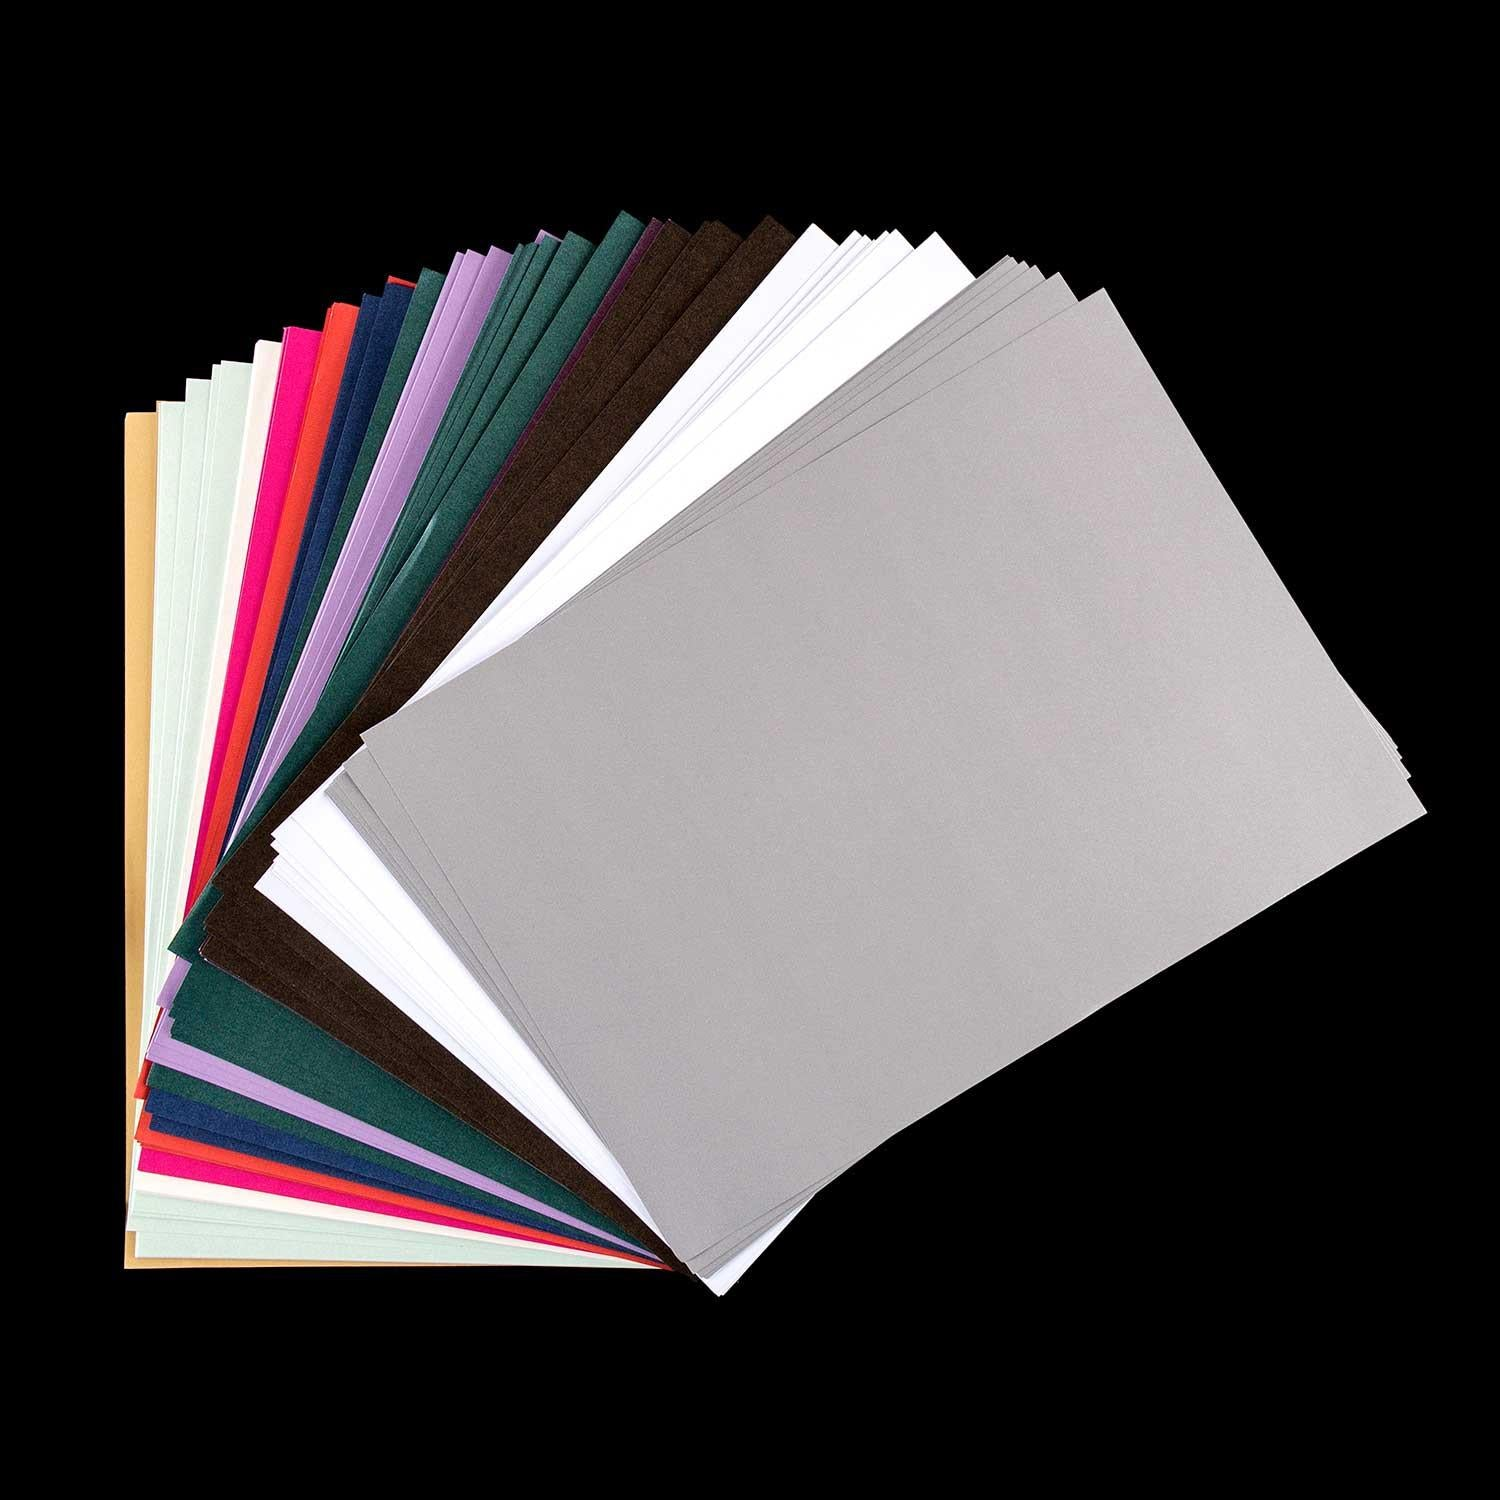 120 Sheets of A4 Shimmer Paper in Assorted Colours